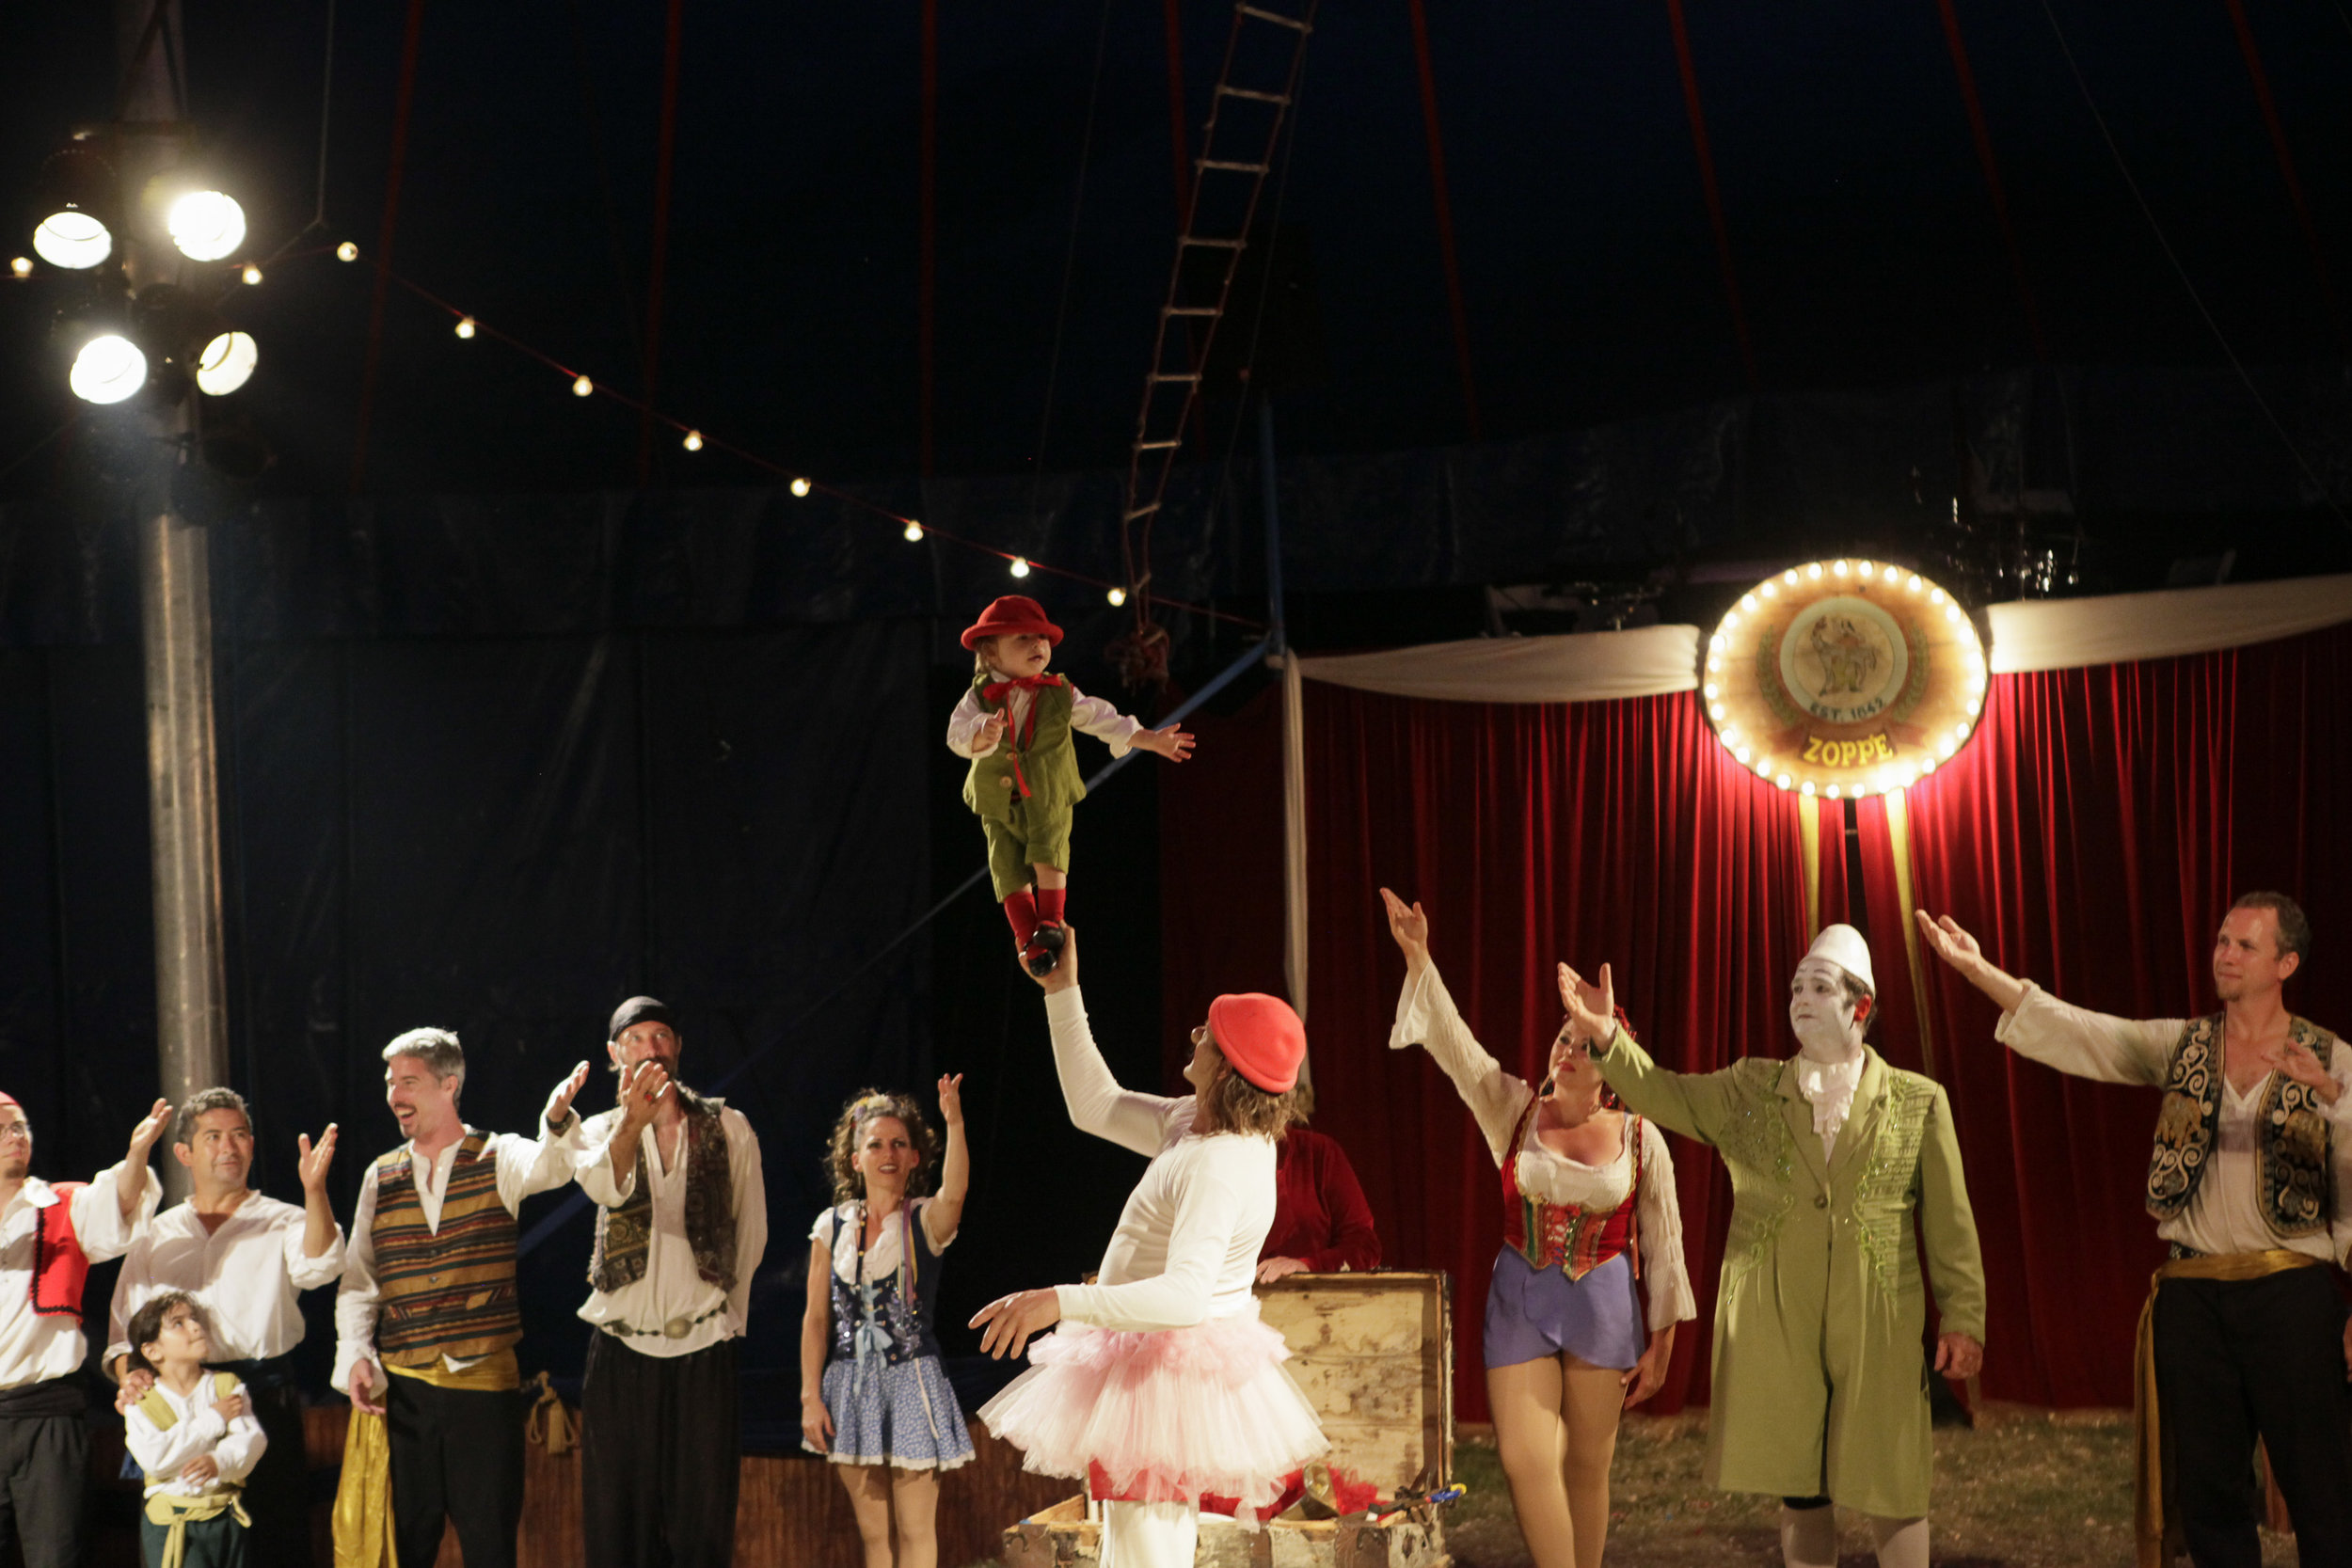 As the troupe take their final bows, Giovanni, in character as Nino dressed as an equestrian ballerina, presents young Julien for applause. Rhythms of life for circus families are out of the norm—even the littlest kids stay up late and are encouraged to take risks—but their extended family is there to support them all day every day.